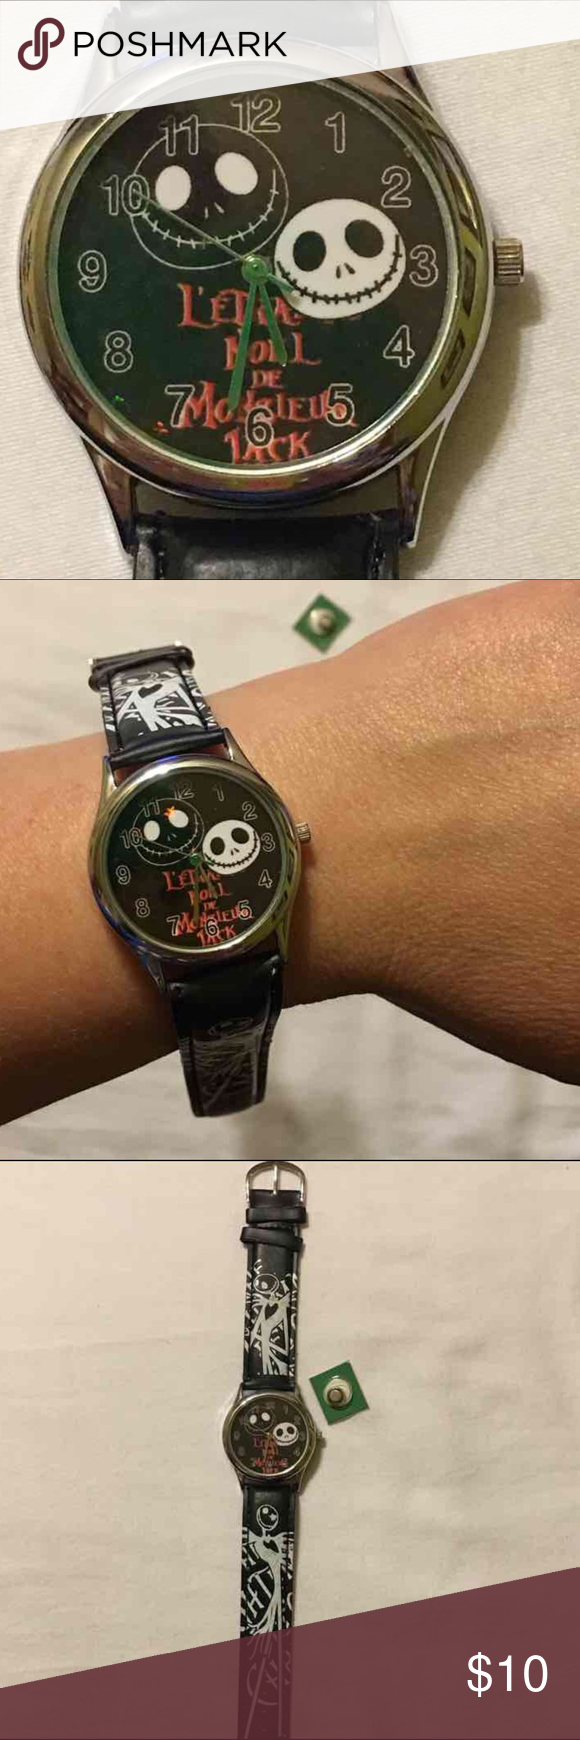 Nightmare Before Christmas Watch Boutique | Accessories, Before ...